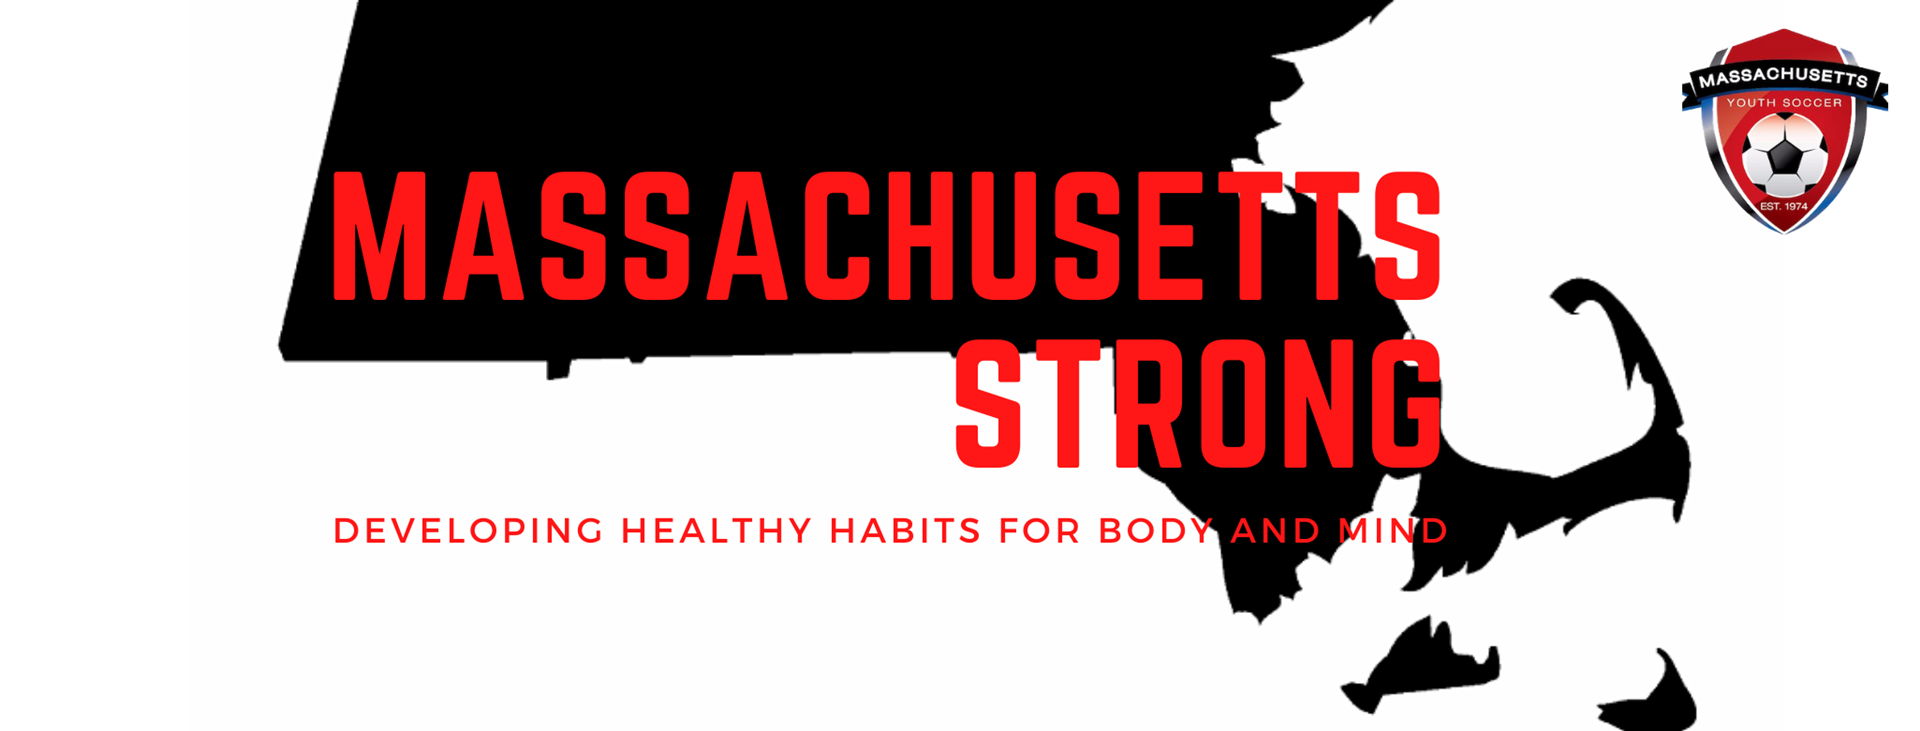 Copy_of_Massachusetts_Strong_Instagram